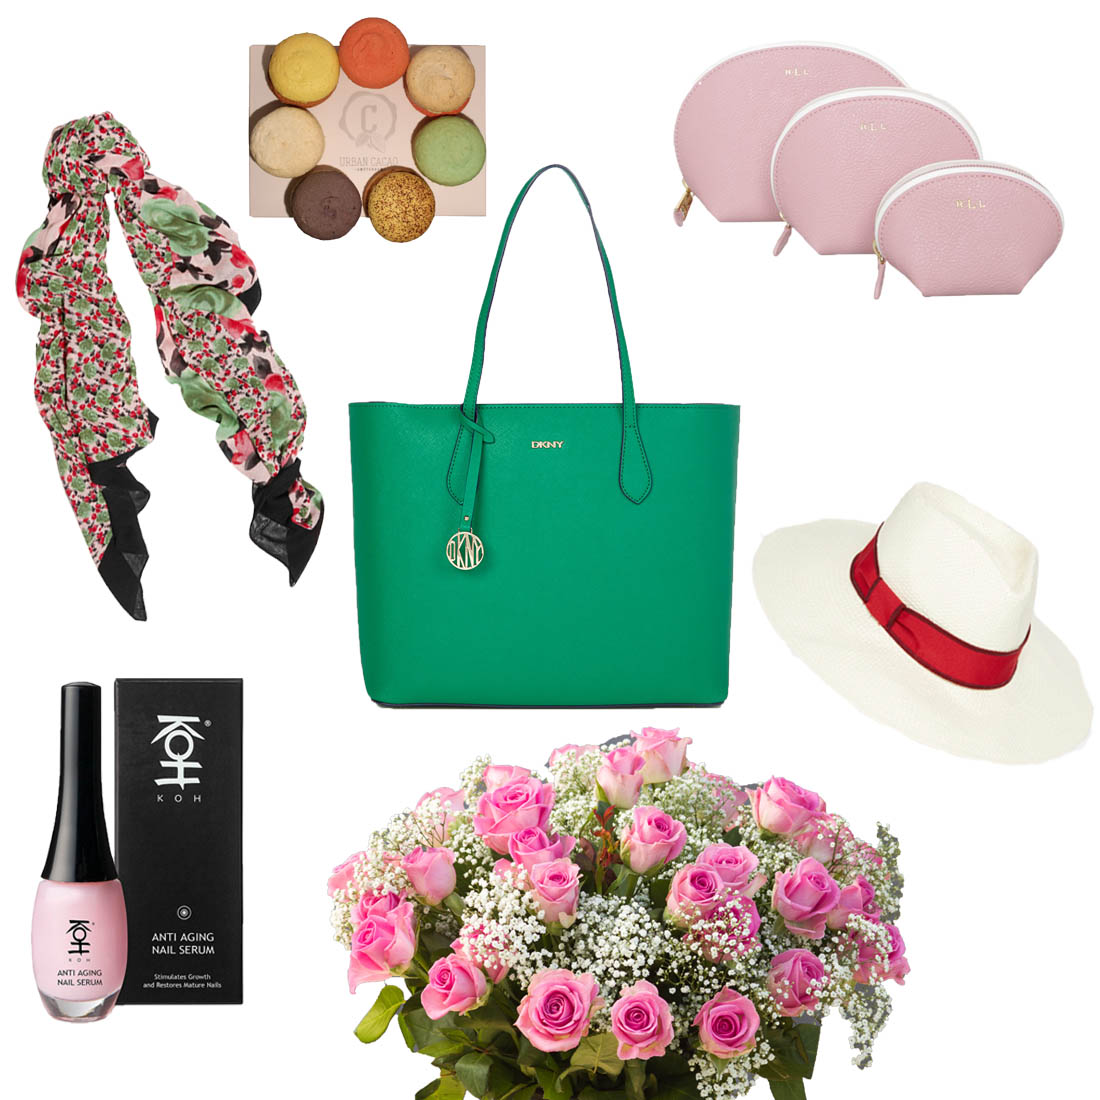 Bag at You - Fashion Blog - Mothers day gifts ideas - Moederdag